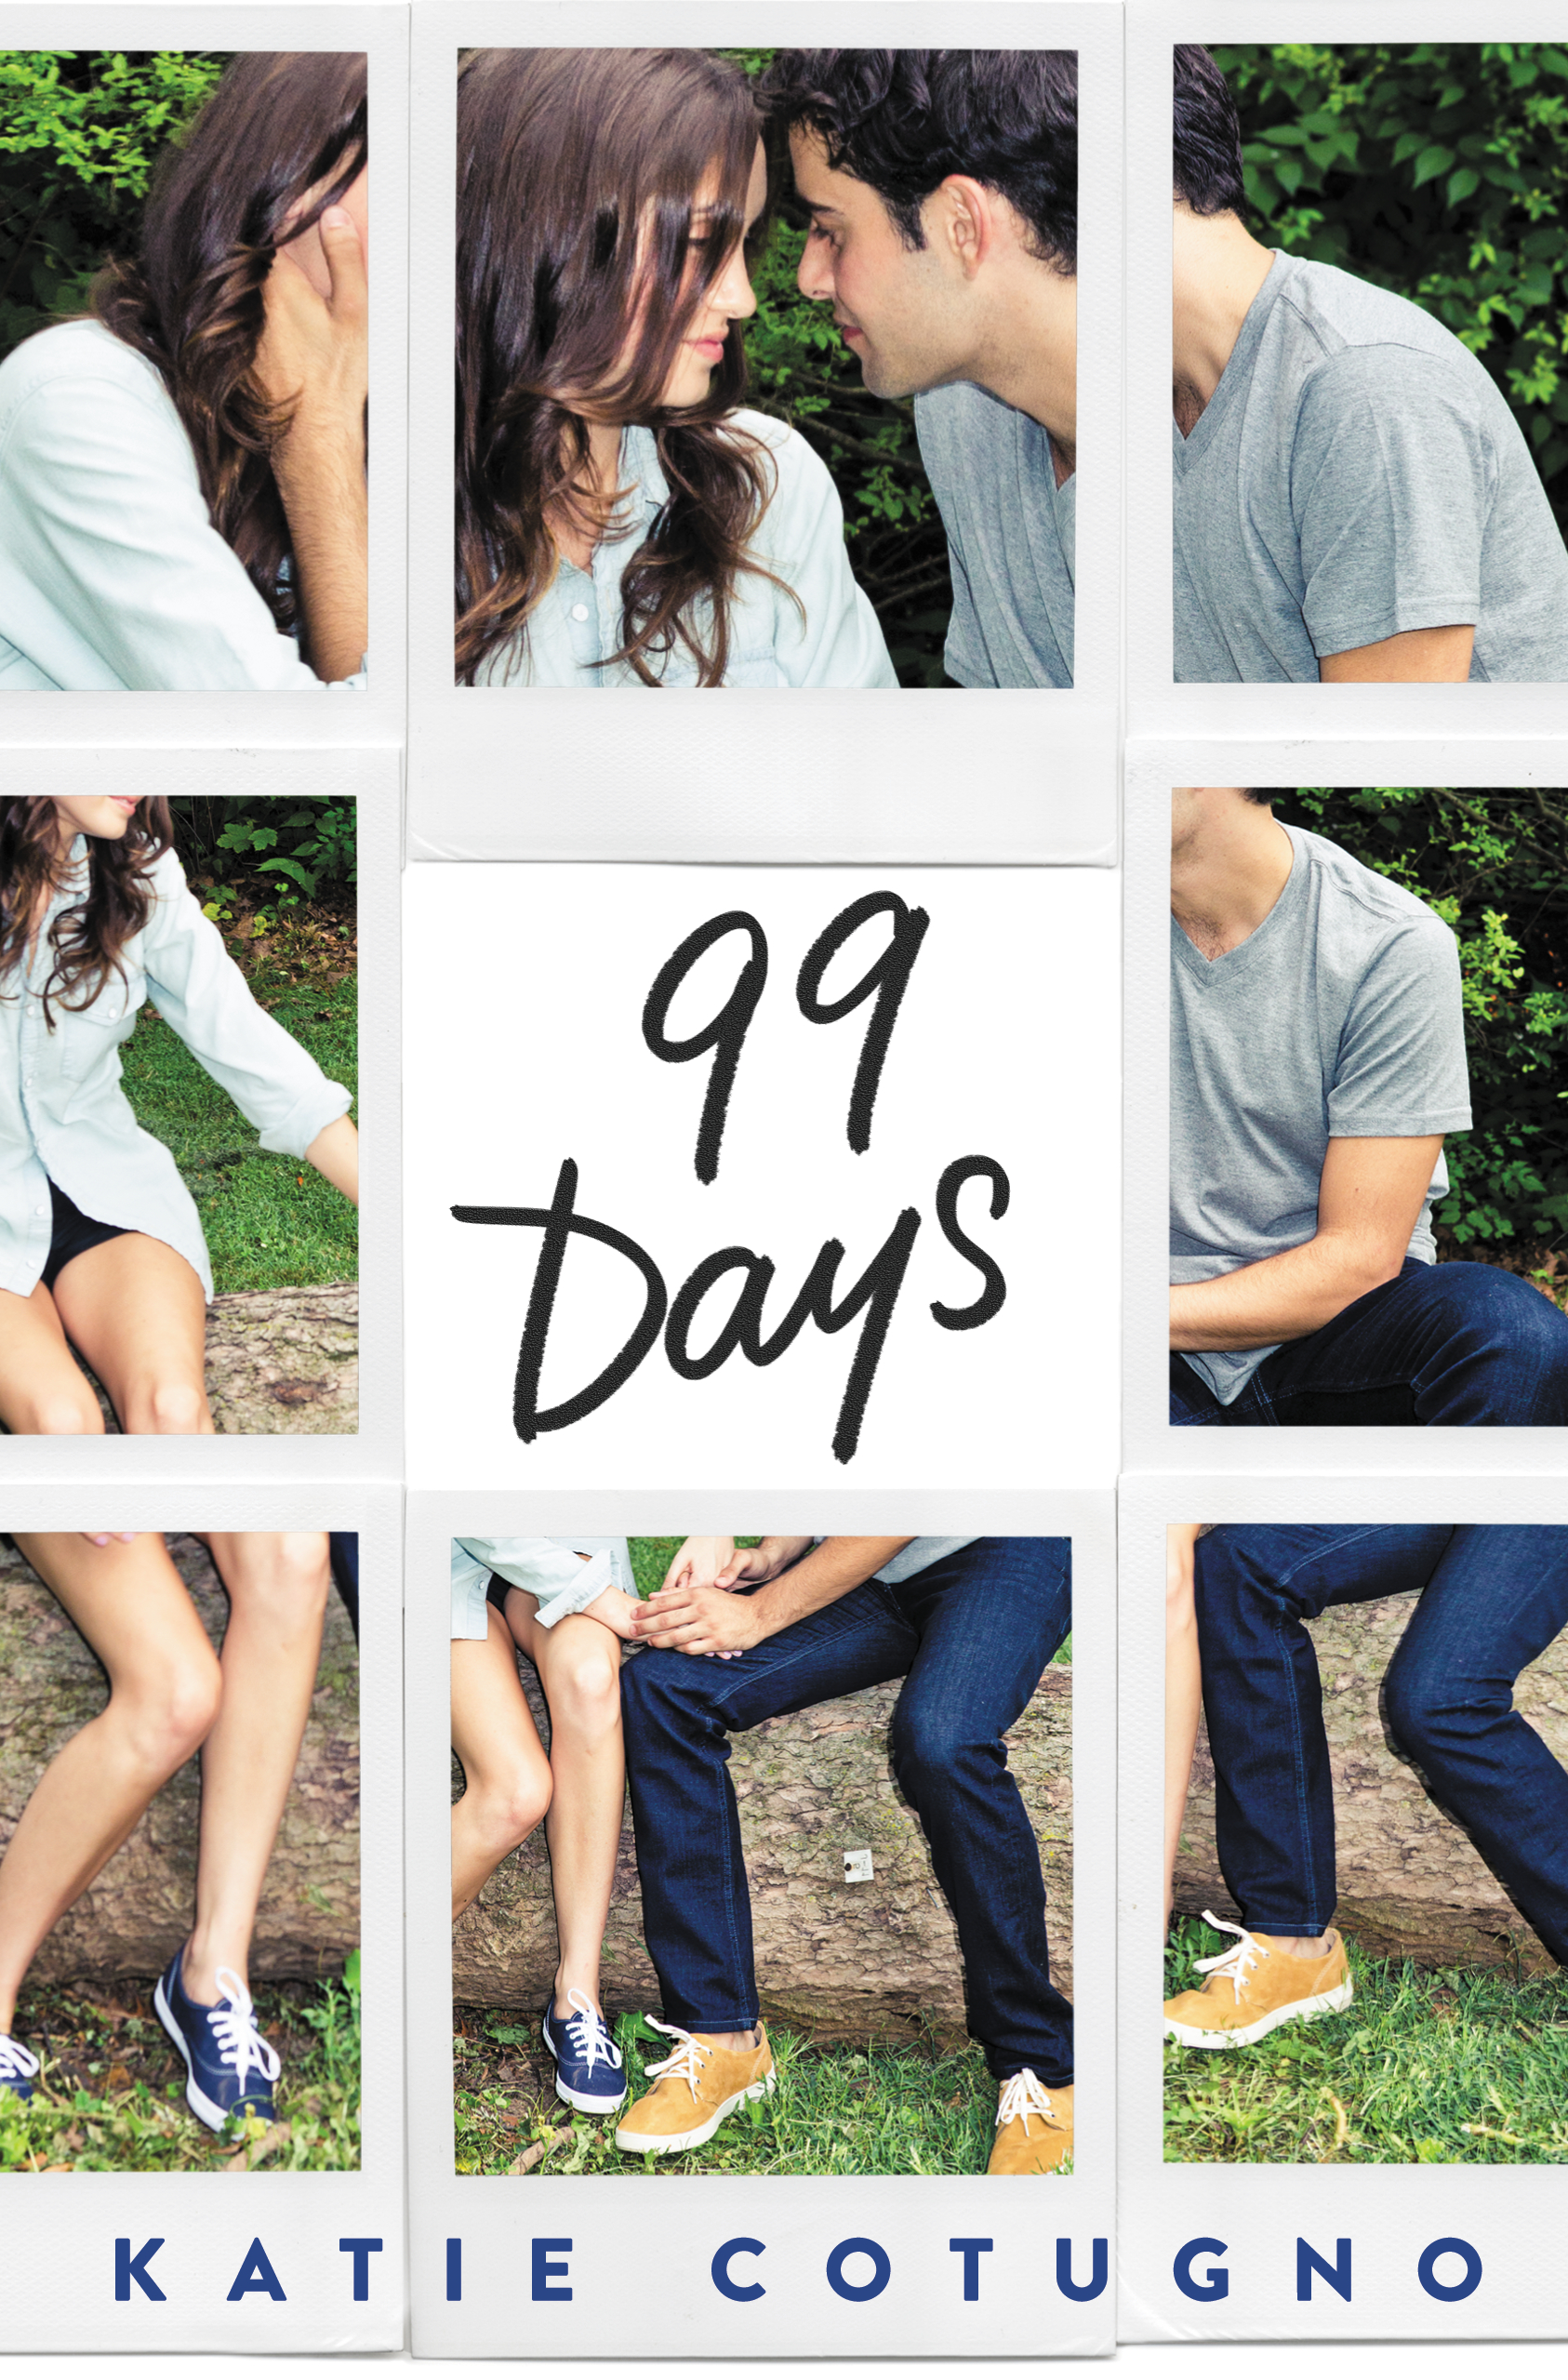 Cover of Katie Cotugno's young adult novel, 99 Days